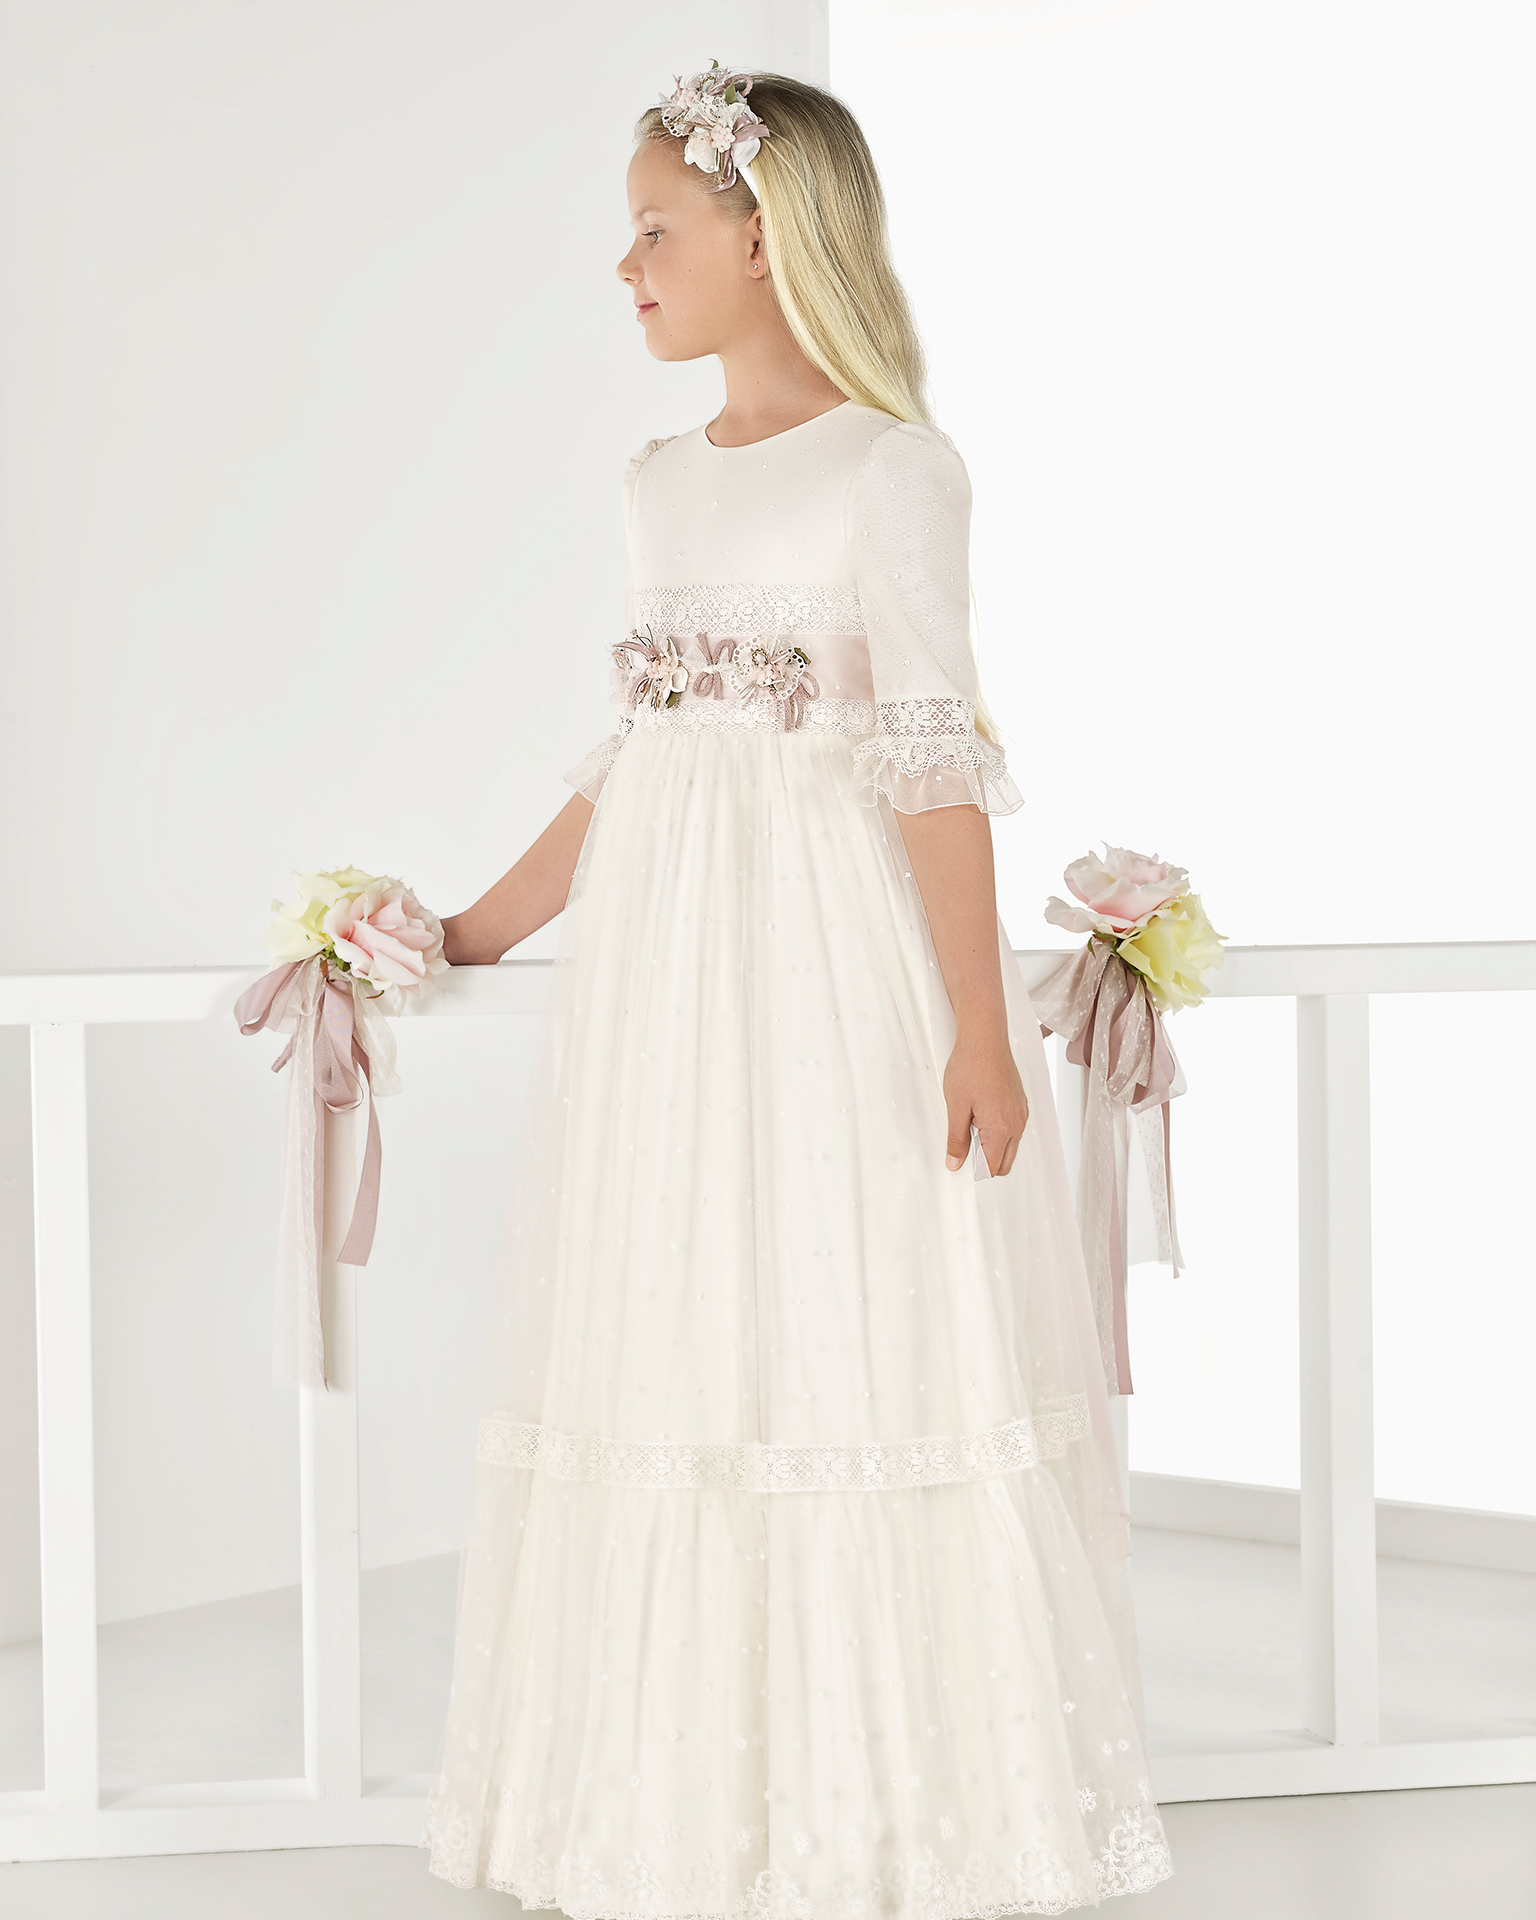 Princess-style embroidered tulle First Communion dress with empire waist, in ivory. 2018 AIRE COMUNION Collection.